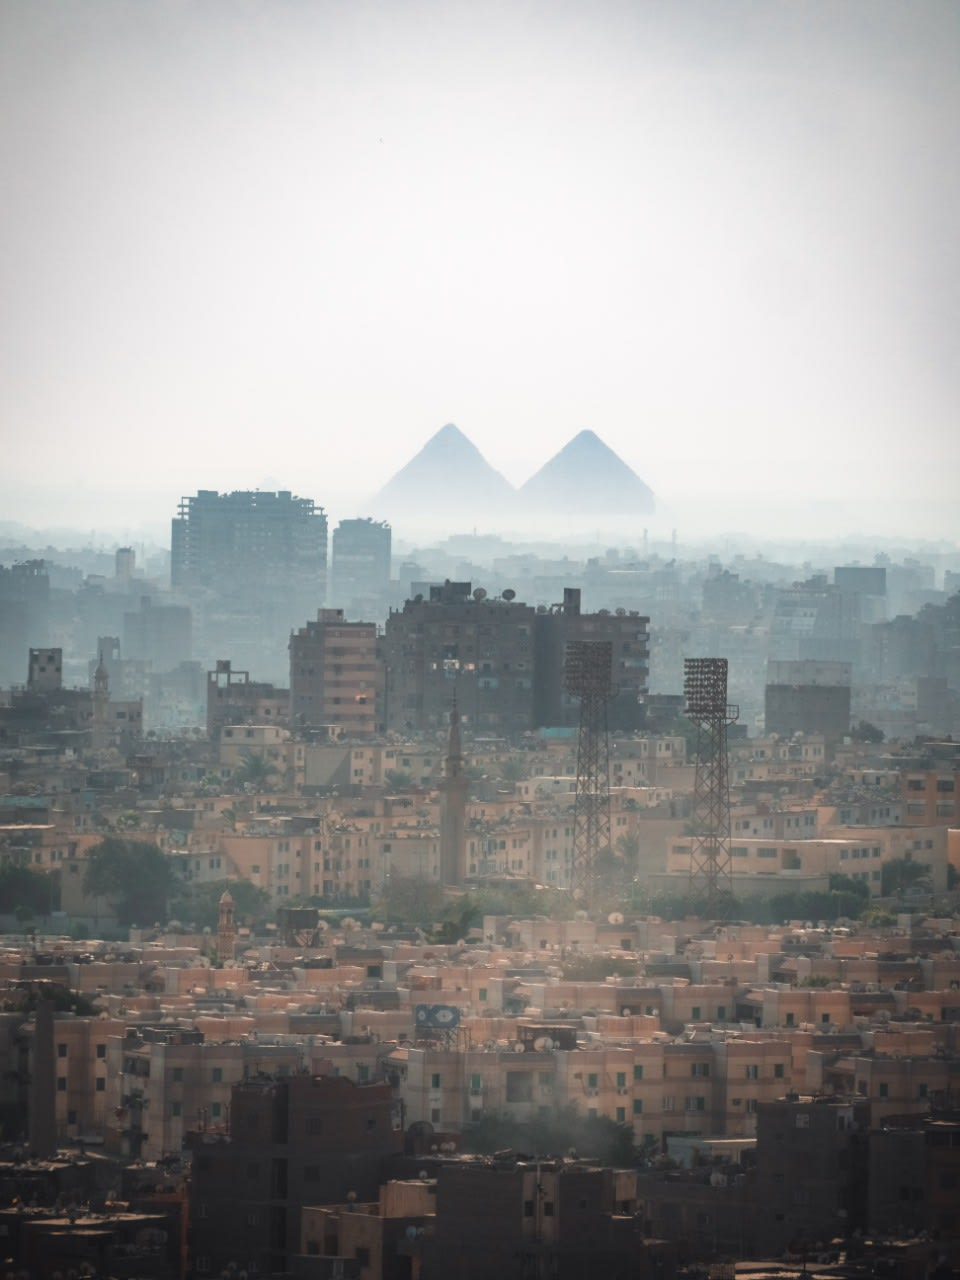 Overlooking the City of Cairo